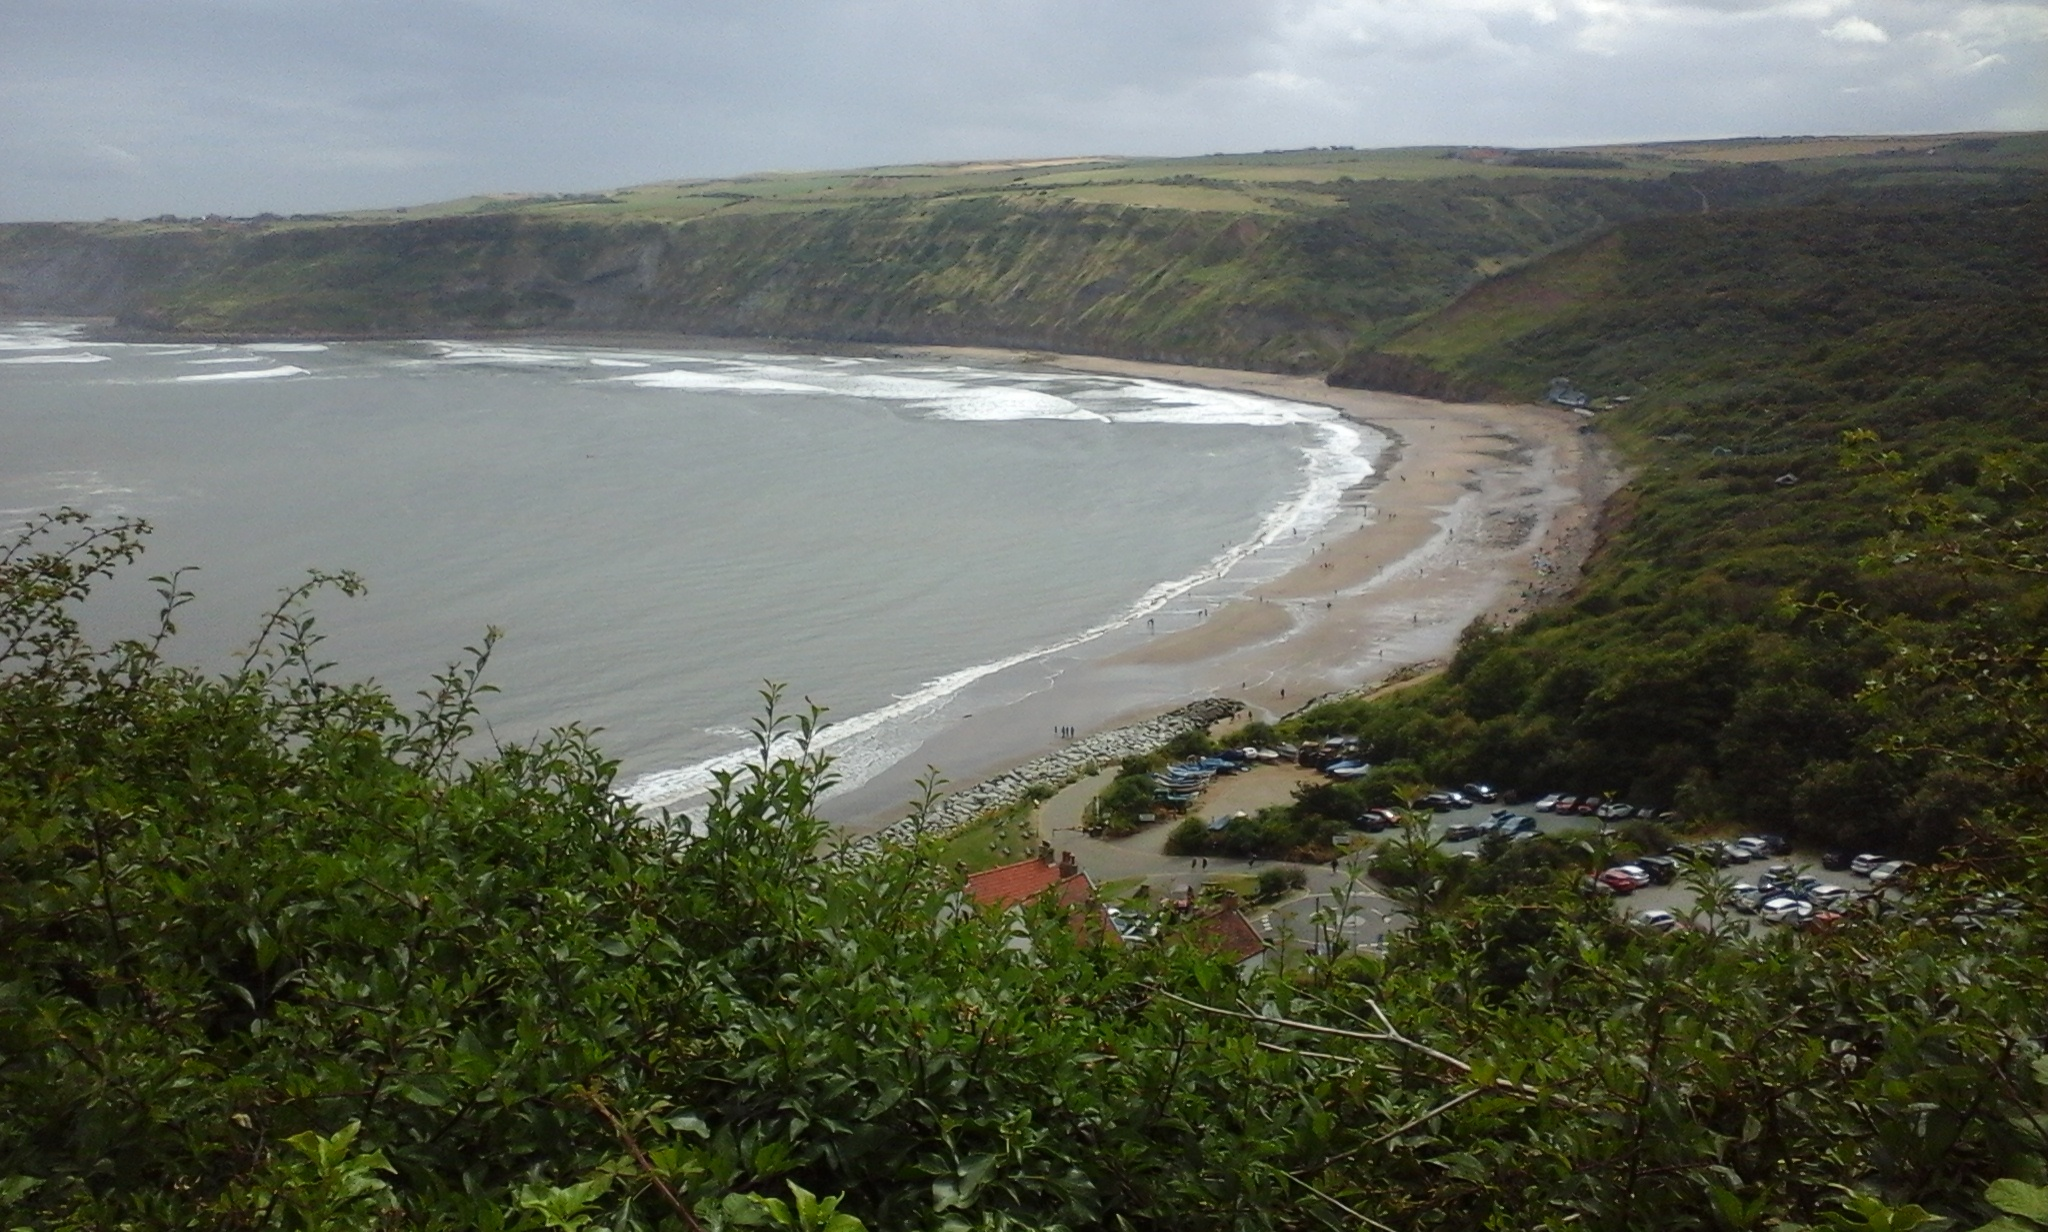 A photo of a nice beach in a small bay, taken from a hill off to the side. A small-leaved tree in the foreground frames the bottom-left, with white-crested waves breaking over the beach in the background, before riding steeply on the way inland.